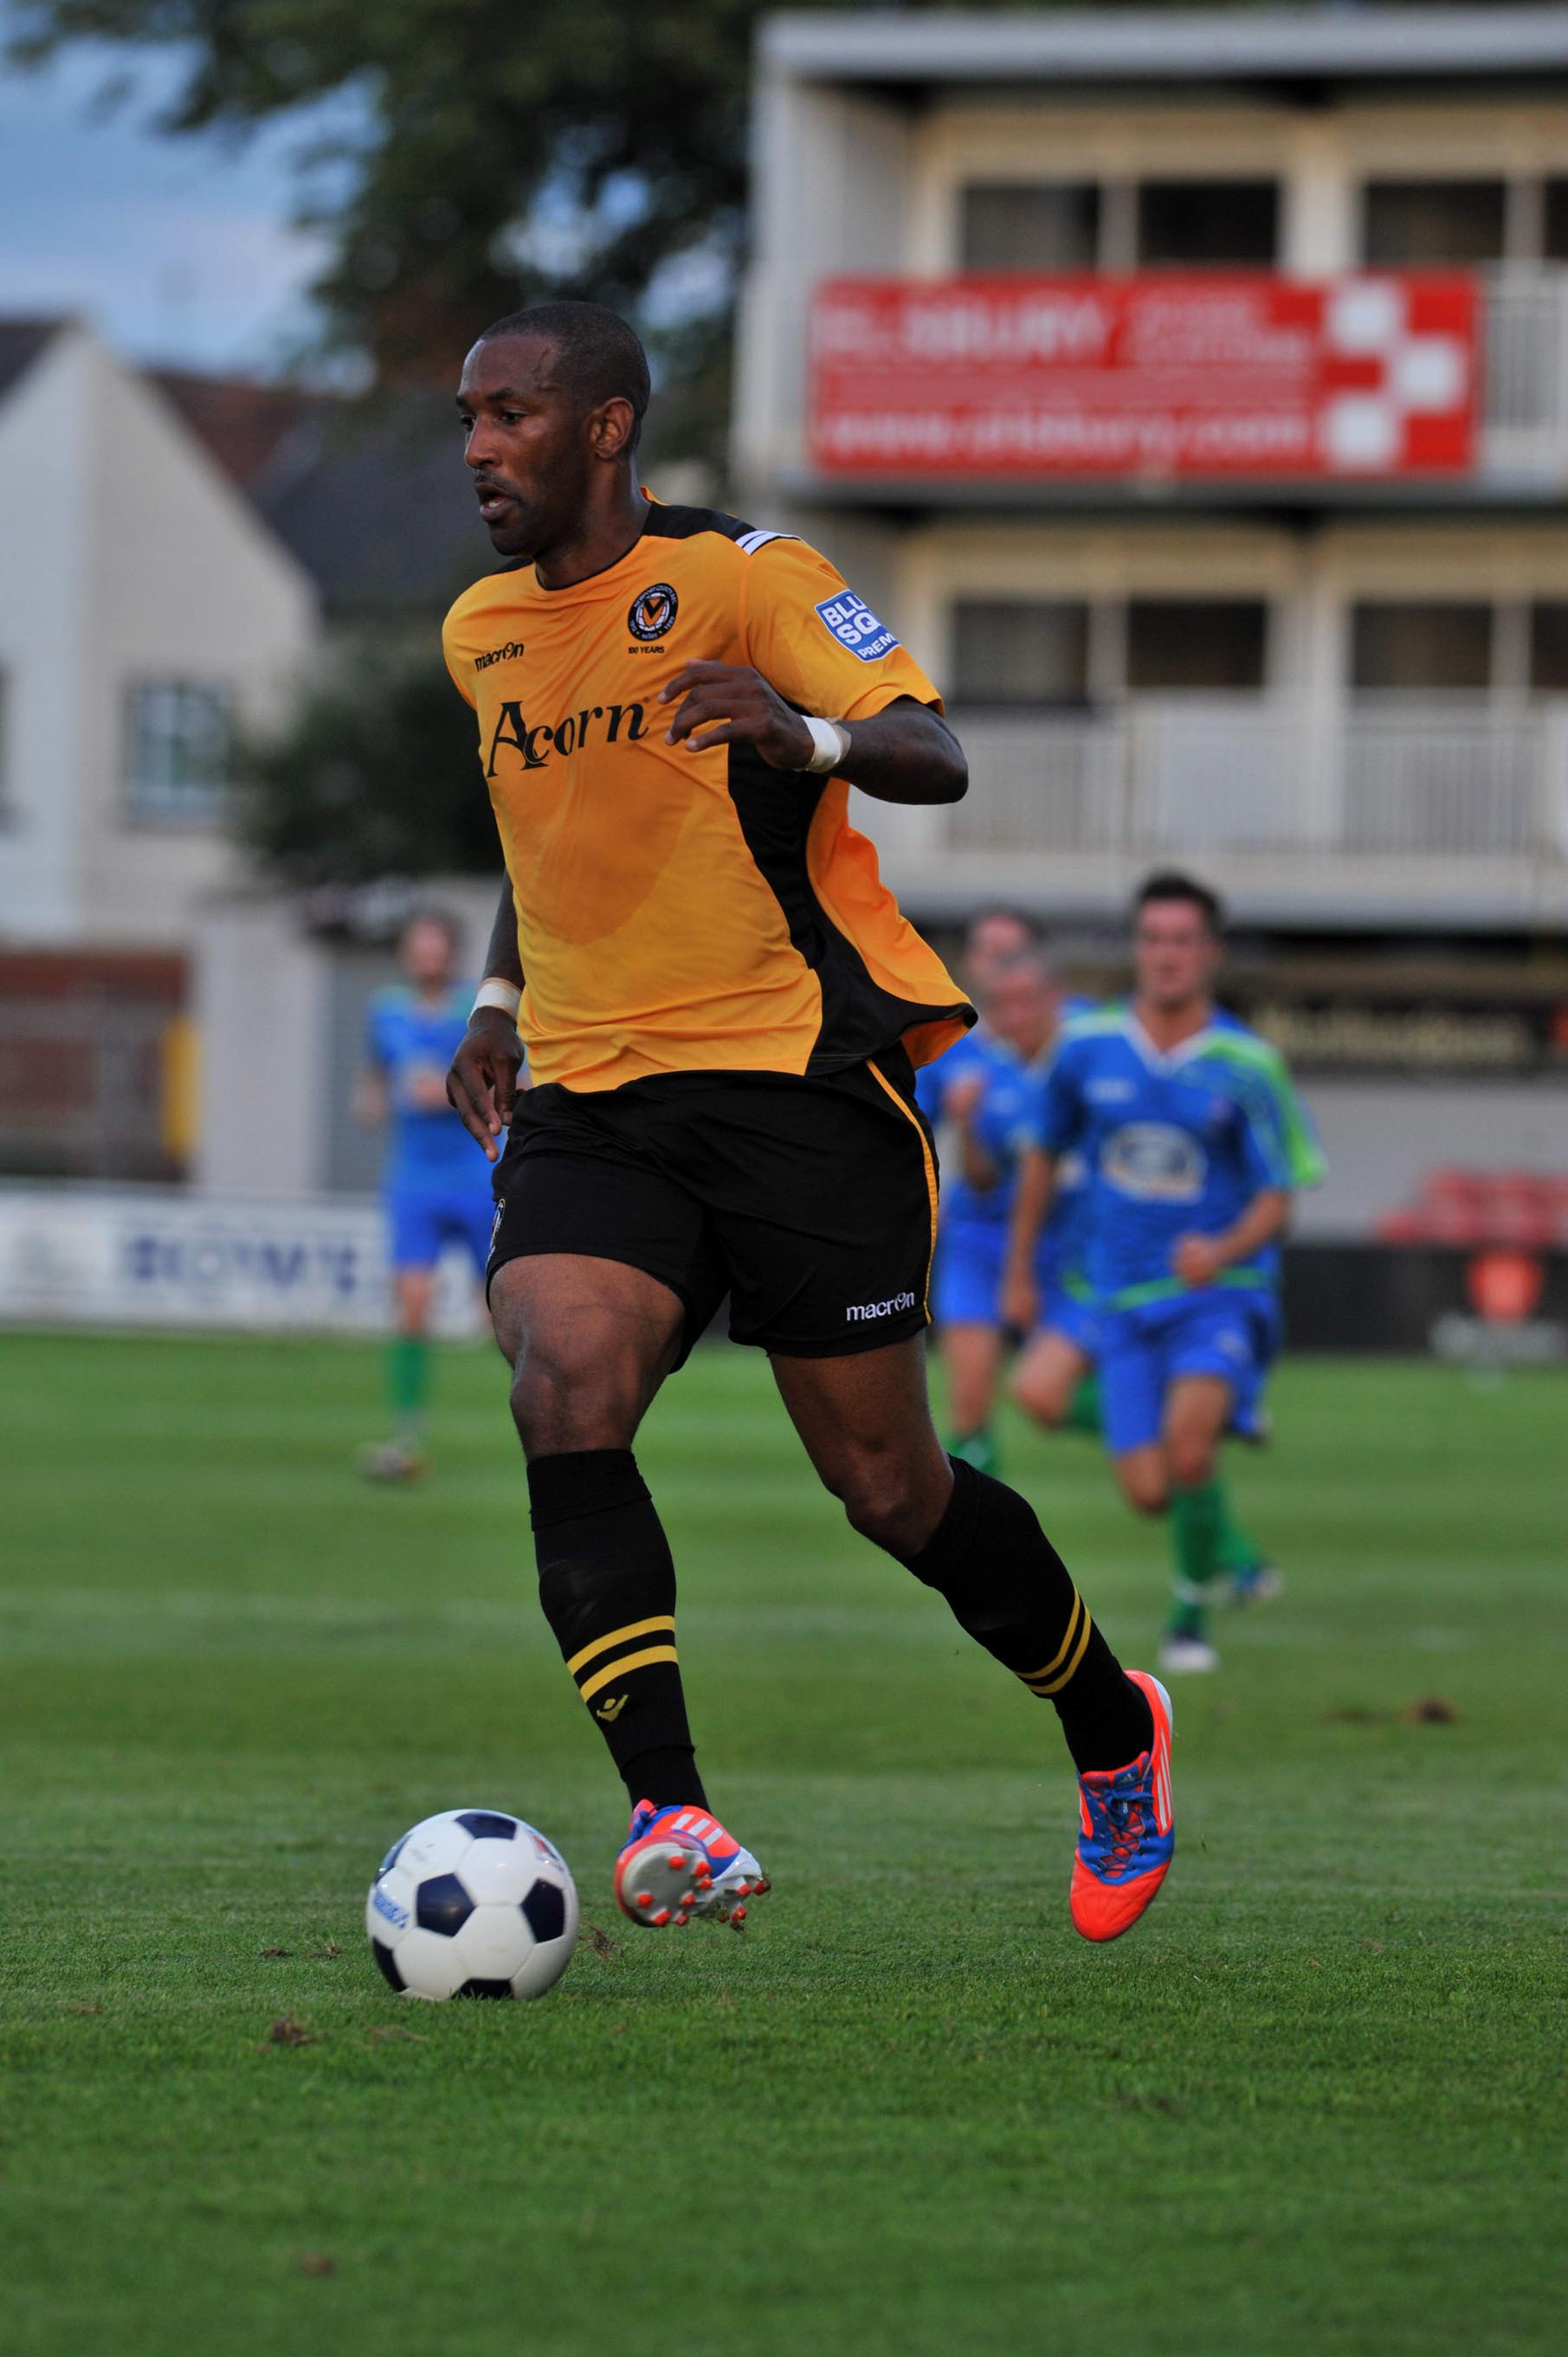 RARING TO GO: County striker Jefferson Louis